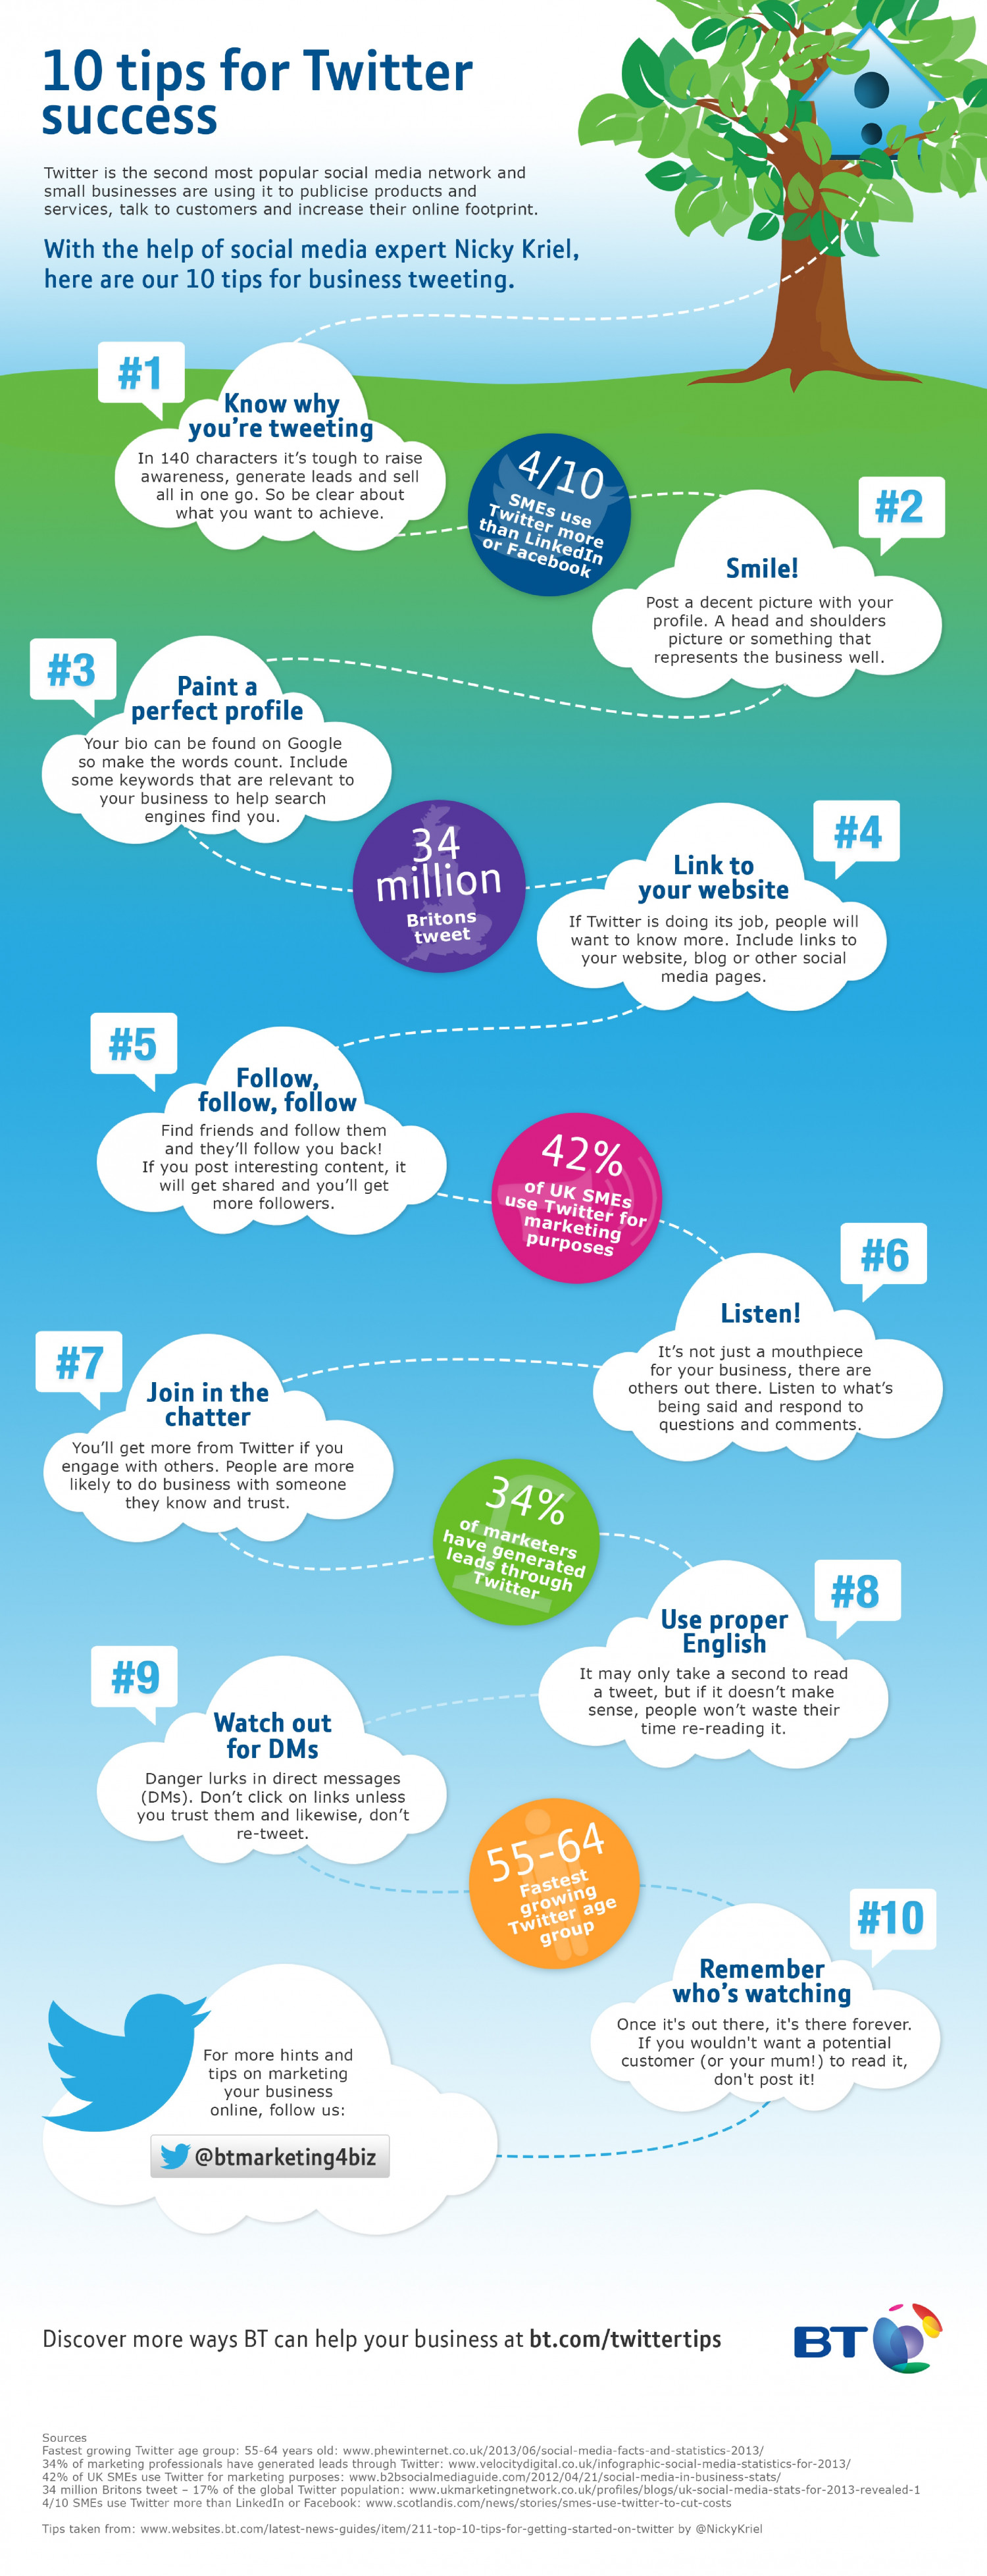 10 tips for Twitter success Infographic